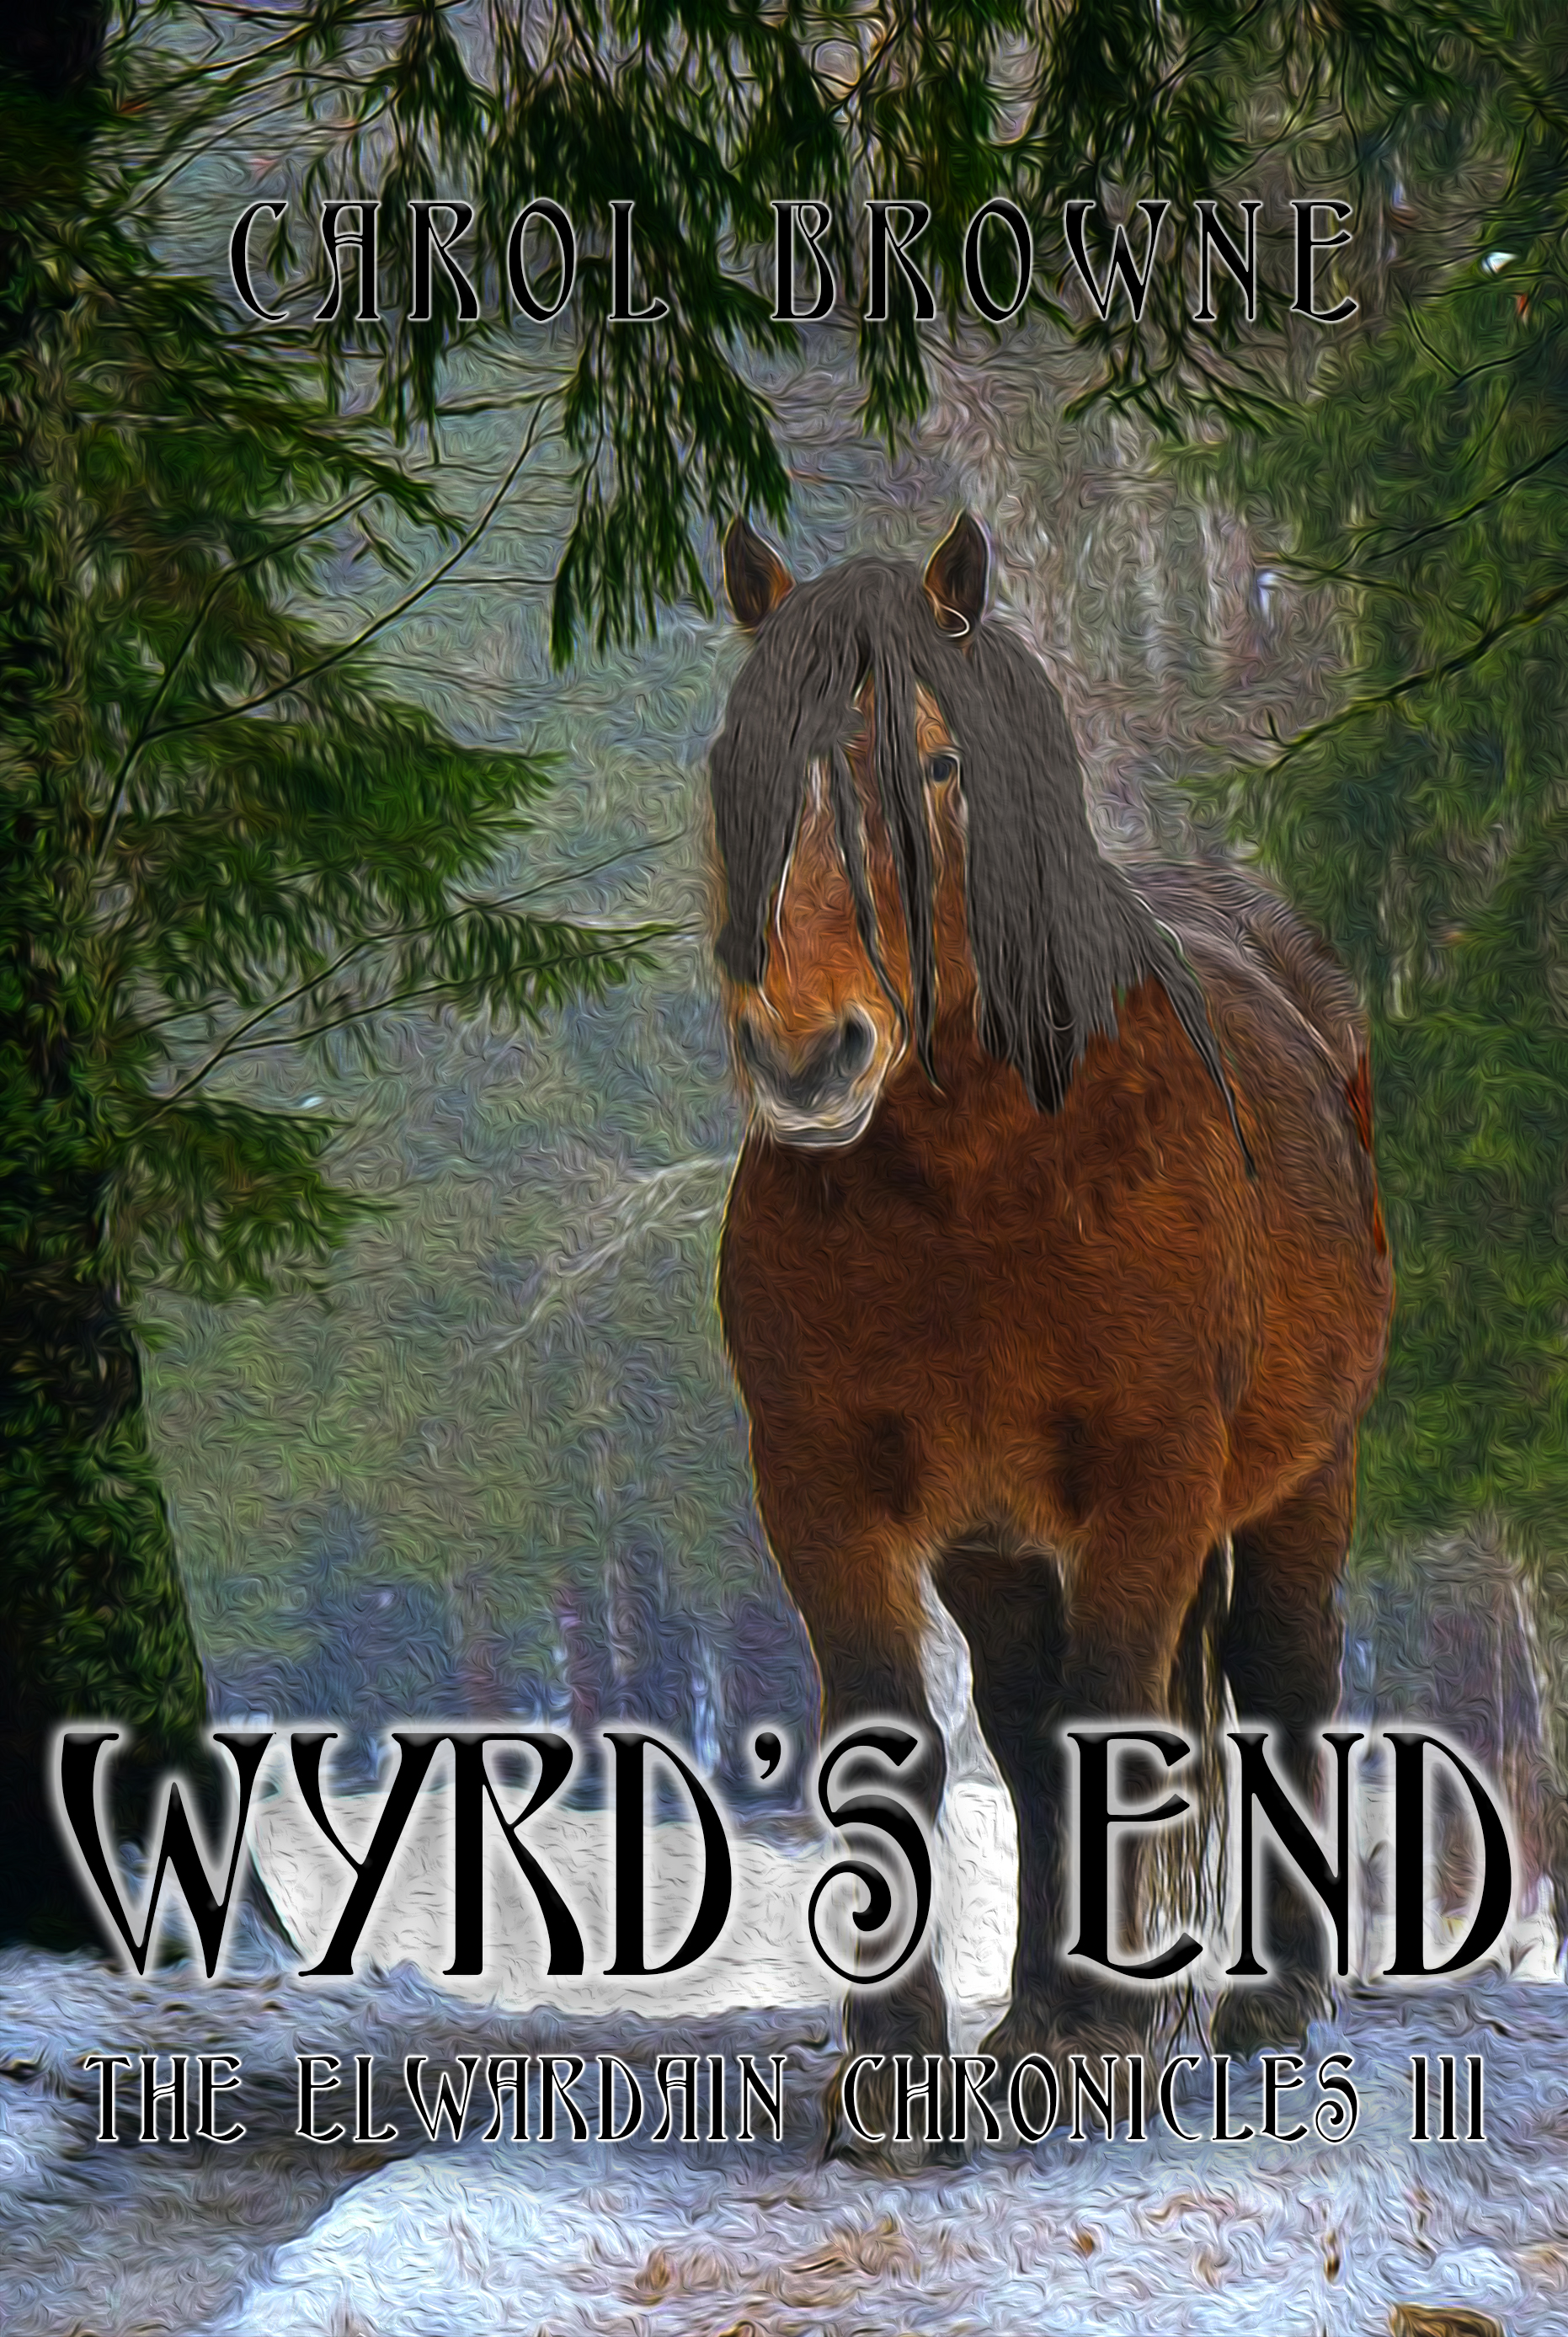 Wyrd's End by Carol Browne